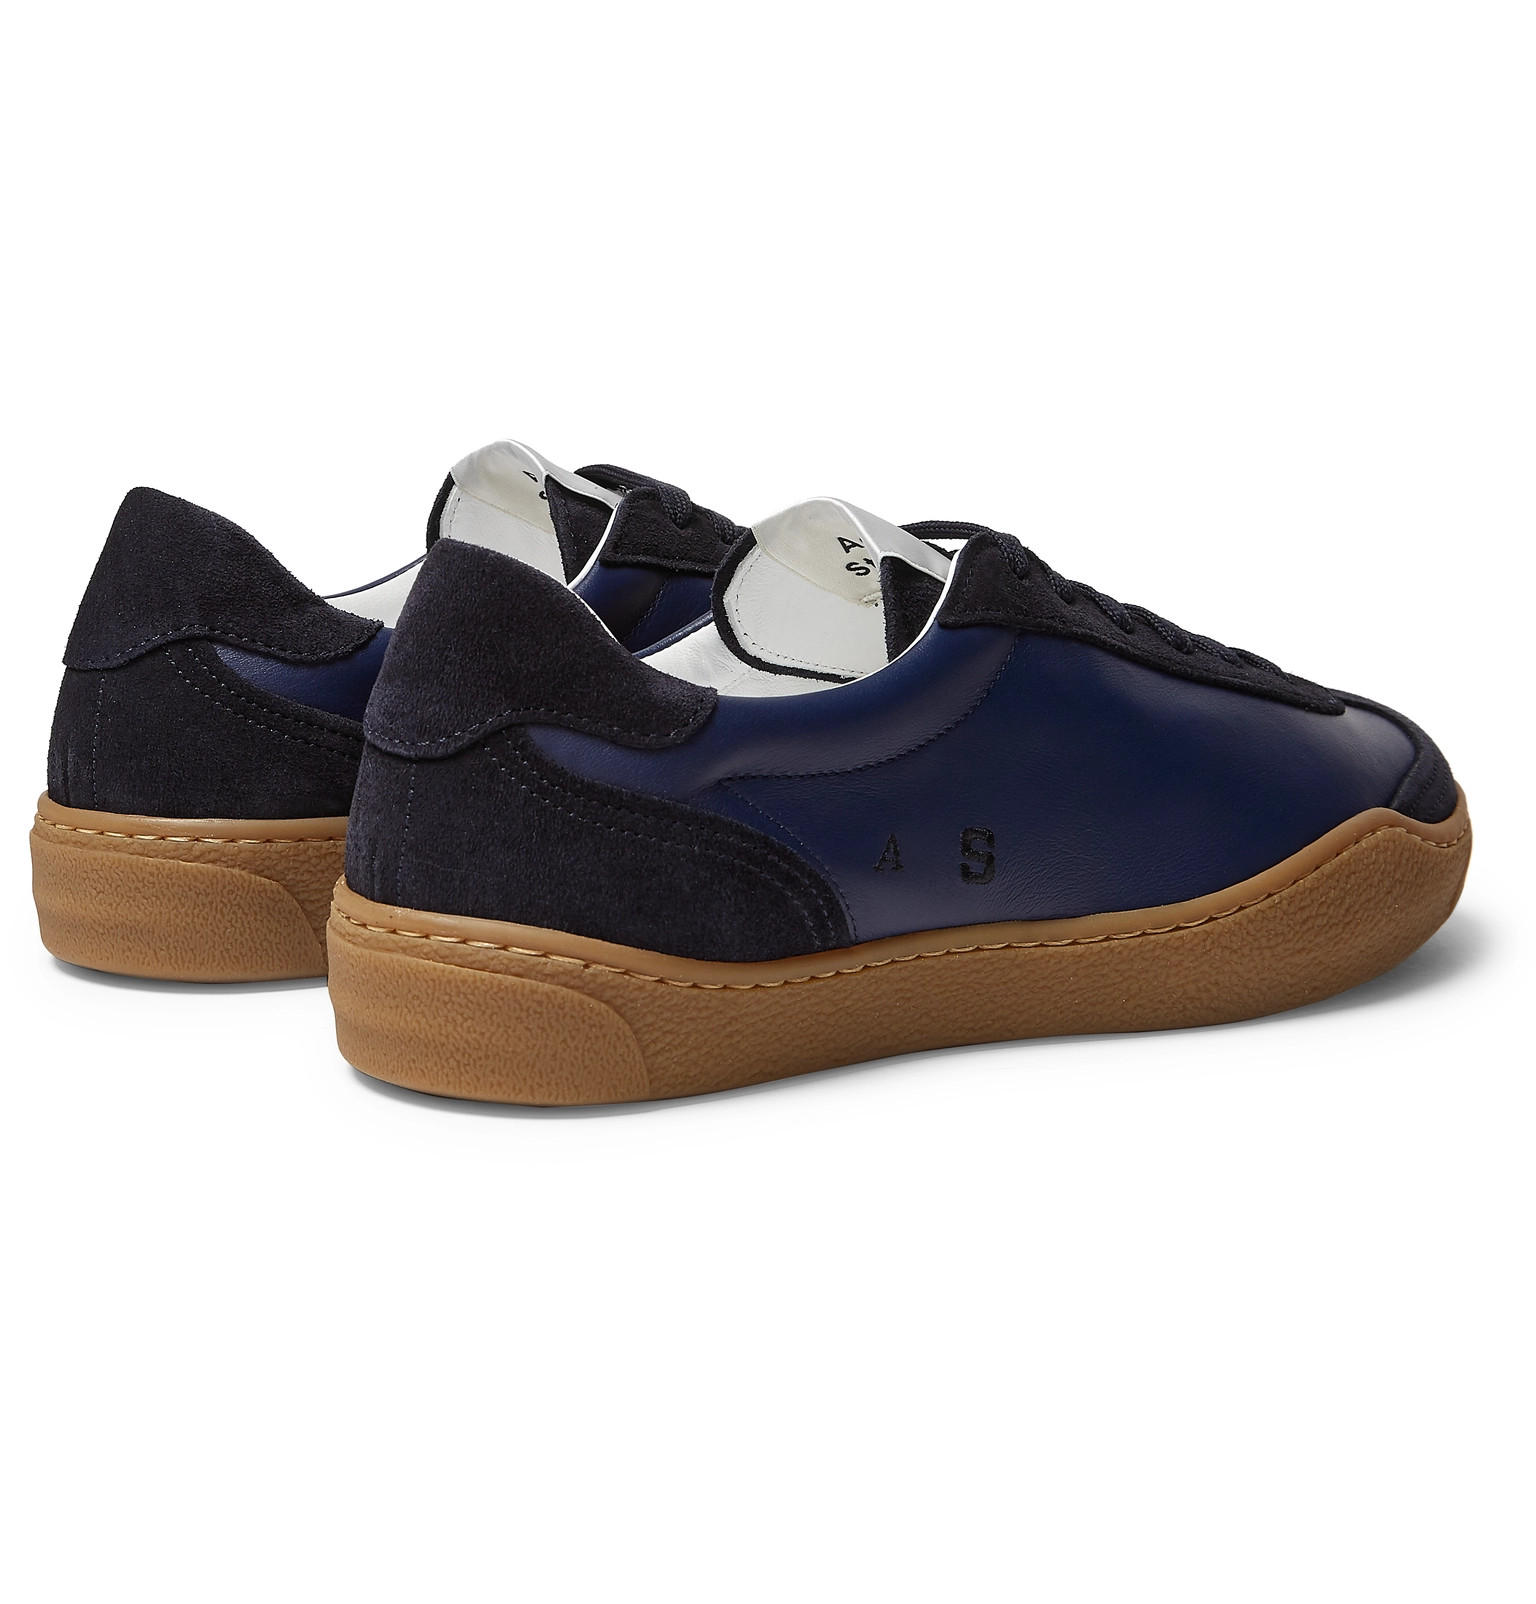 600a2114f7cb Acne Studios - Lars Suede and Leather Sneakers